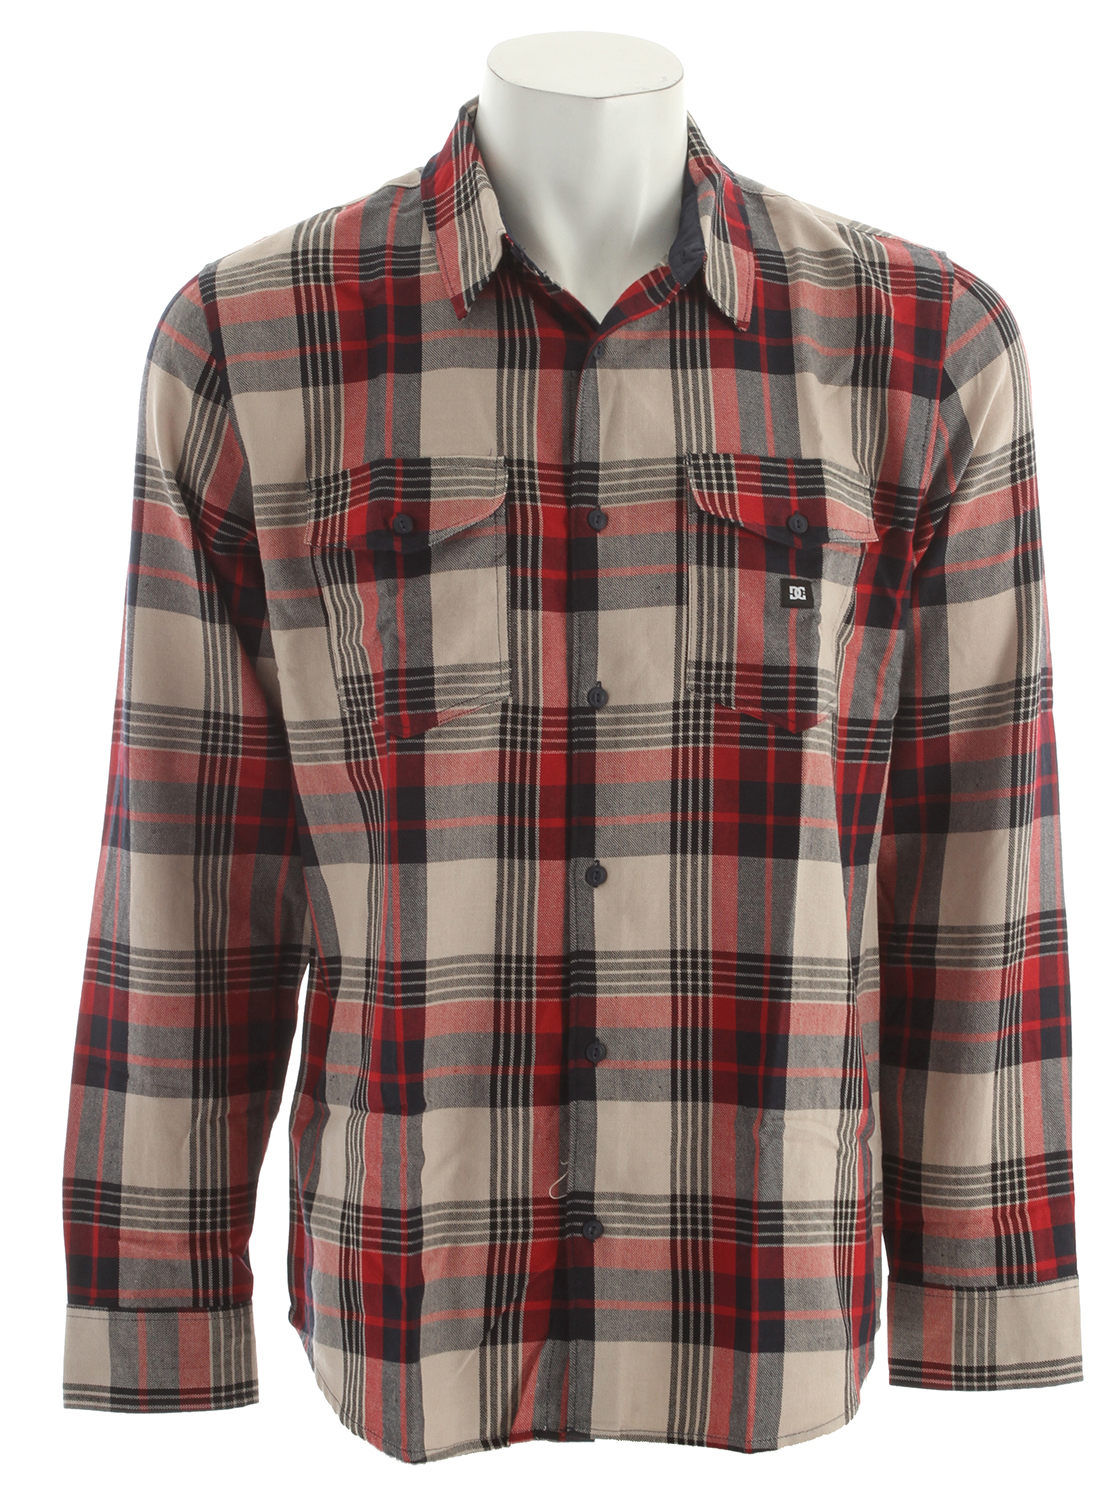 Skateboard Key Features of the DC Hackelman L/S Shirt: Cotton Polyester Yarn Dye Plain Plaid Taffeta Lining at Collar Yoke DC Woven Label at Left Chest Pocket 55% Cotton, 45% Polyester - $38.95